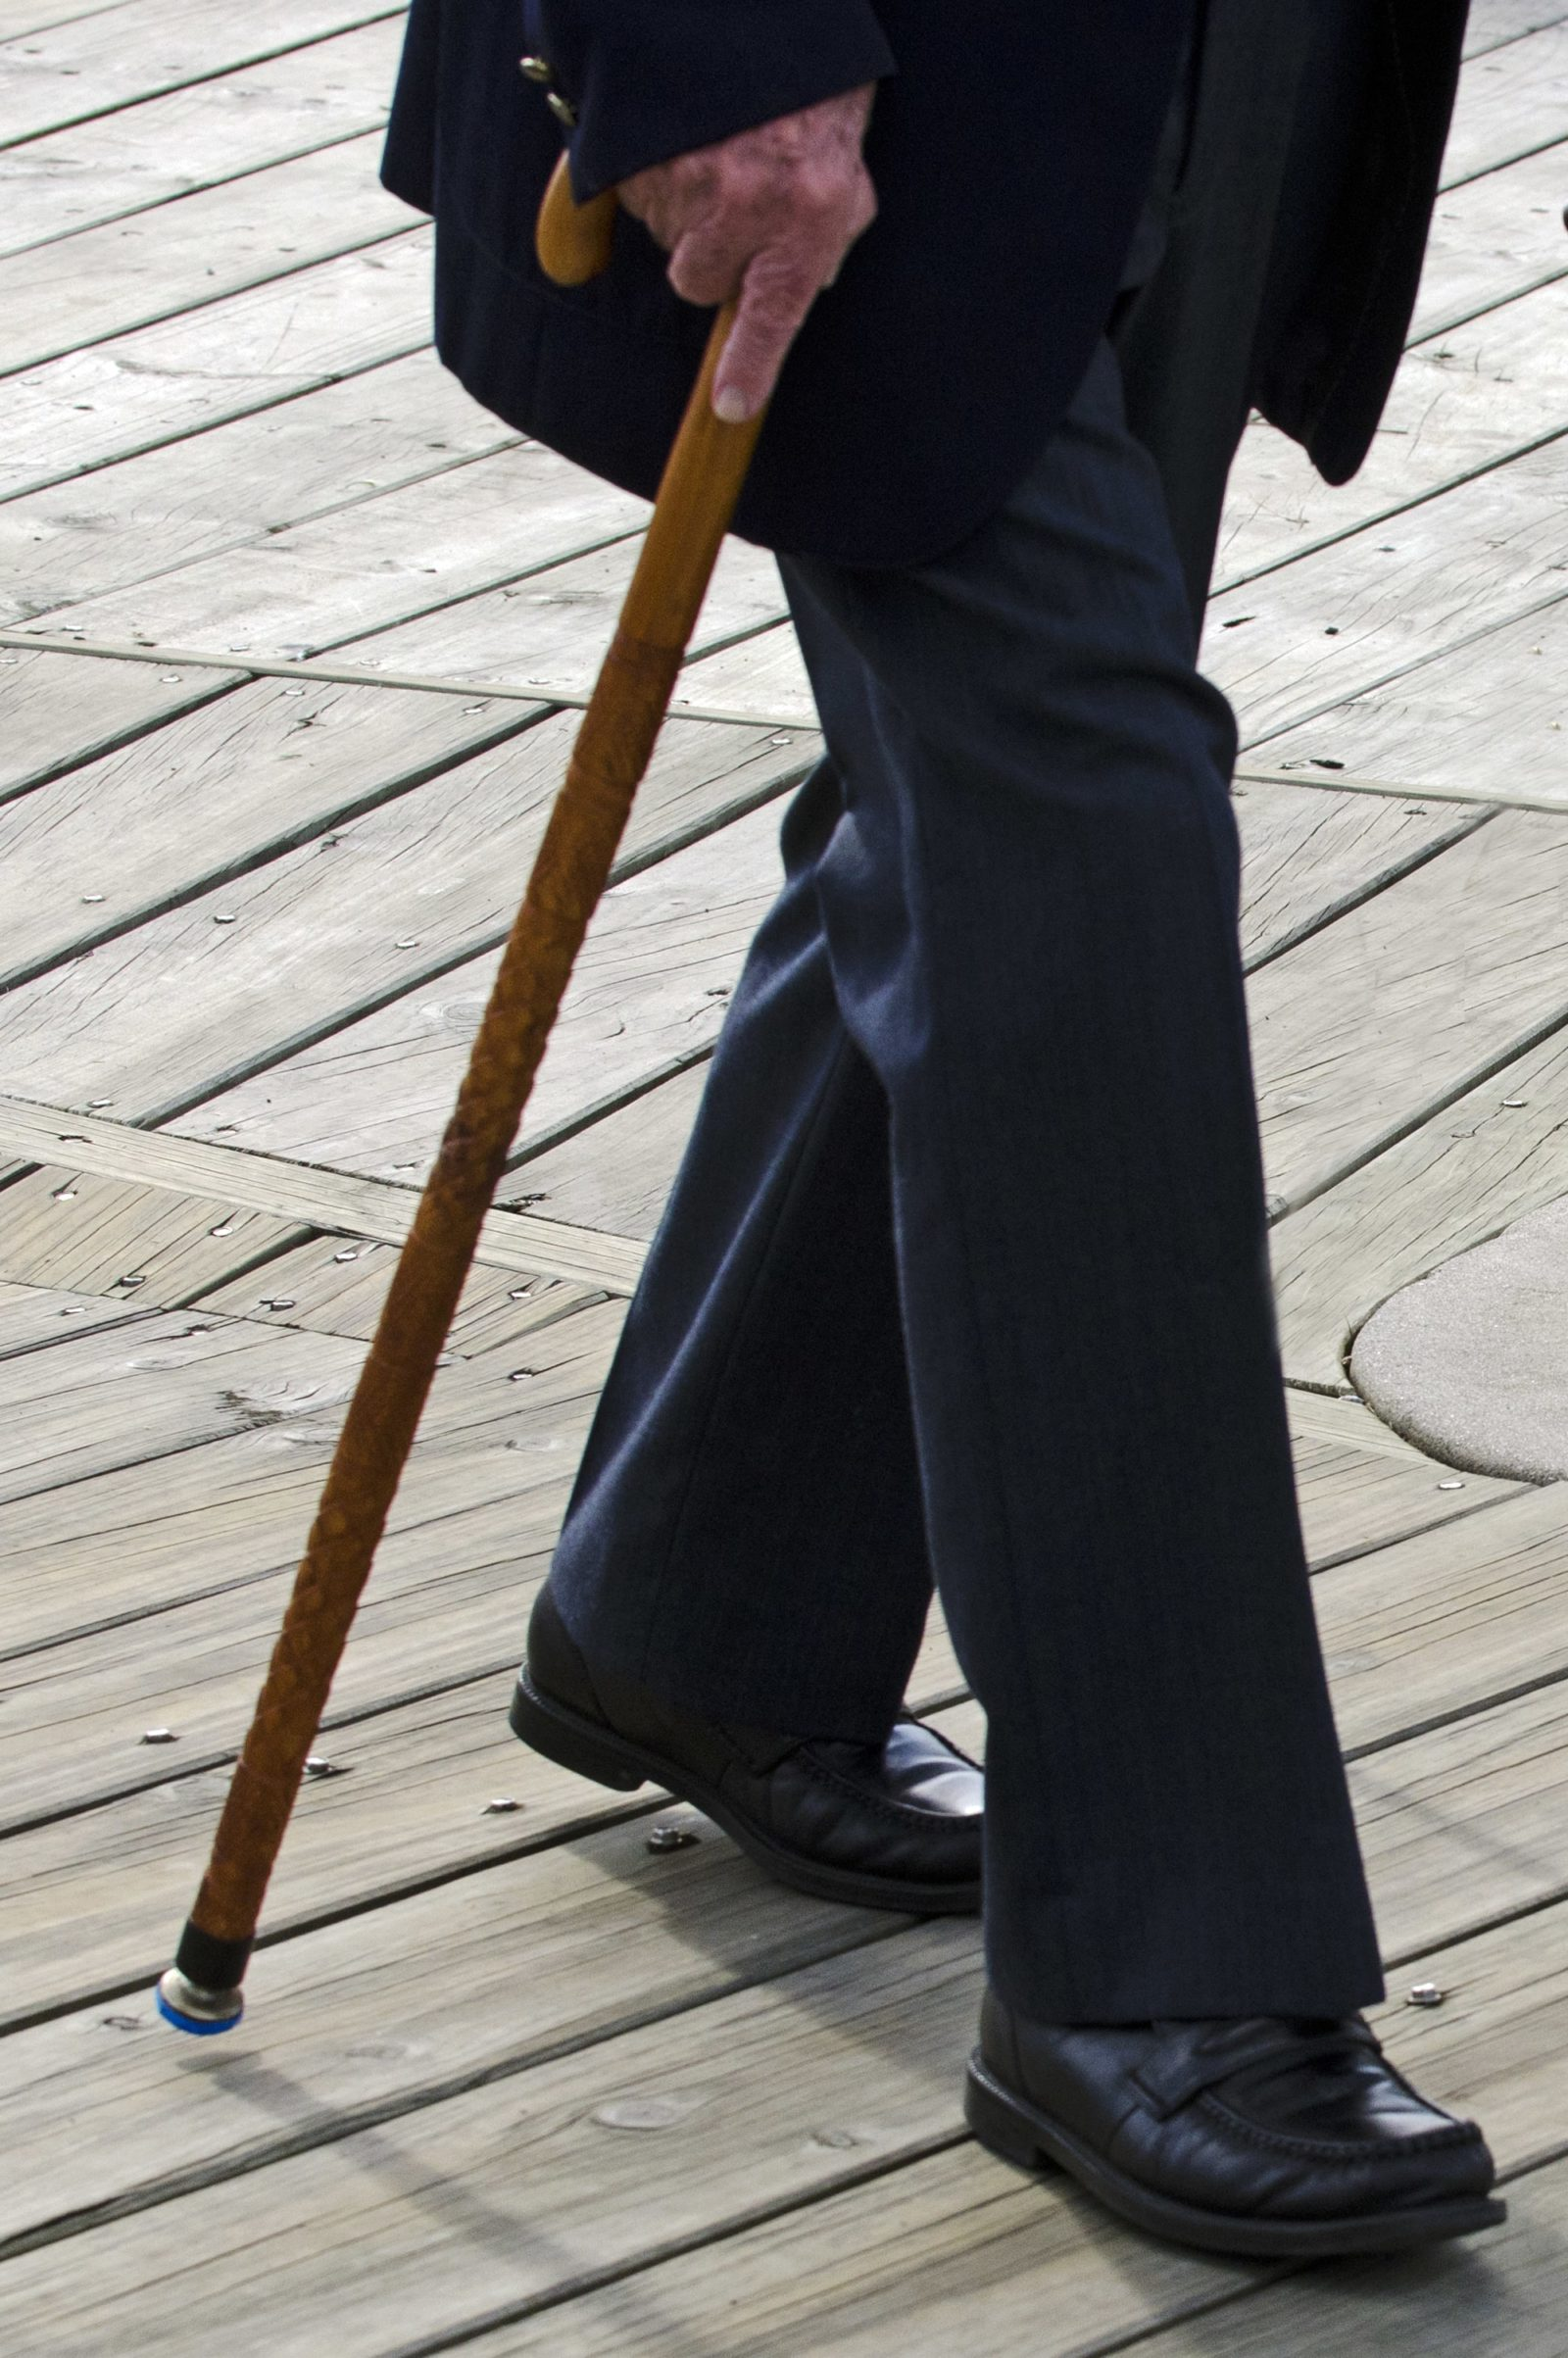 closeup of older man walking with a cane